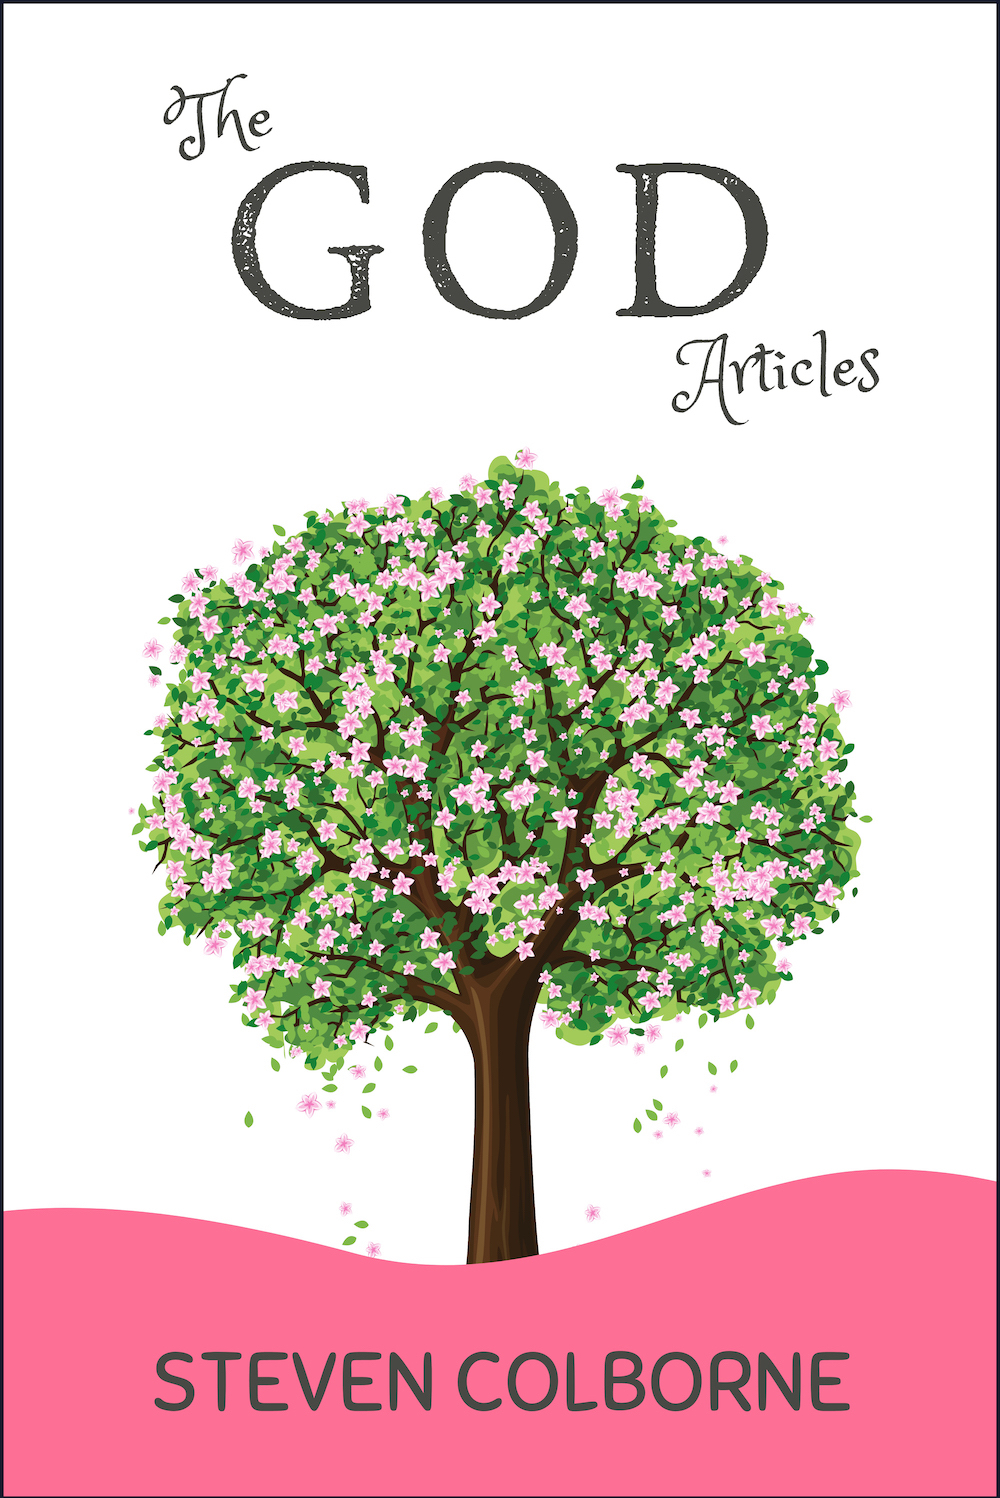 The God Articles by Steven Colborne (book cover)